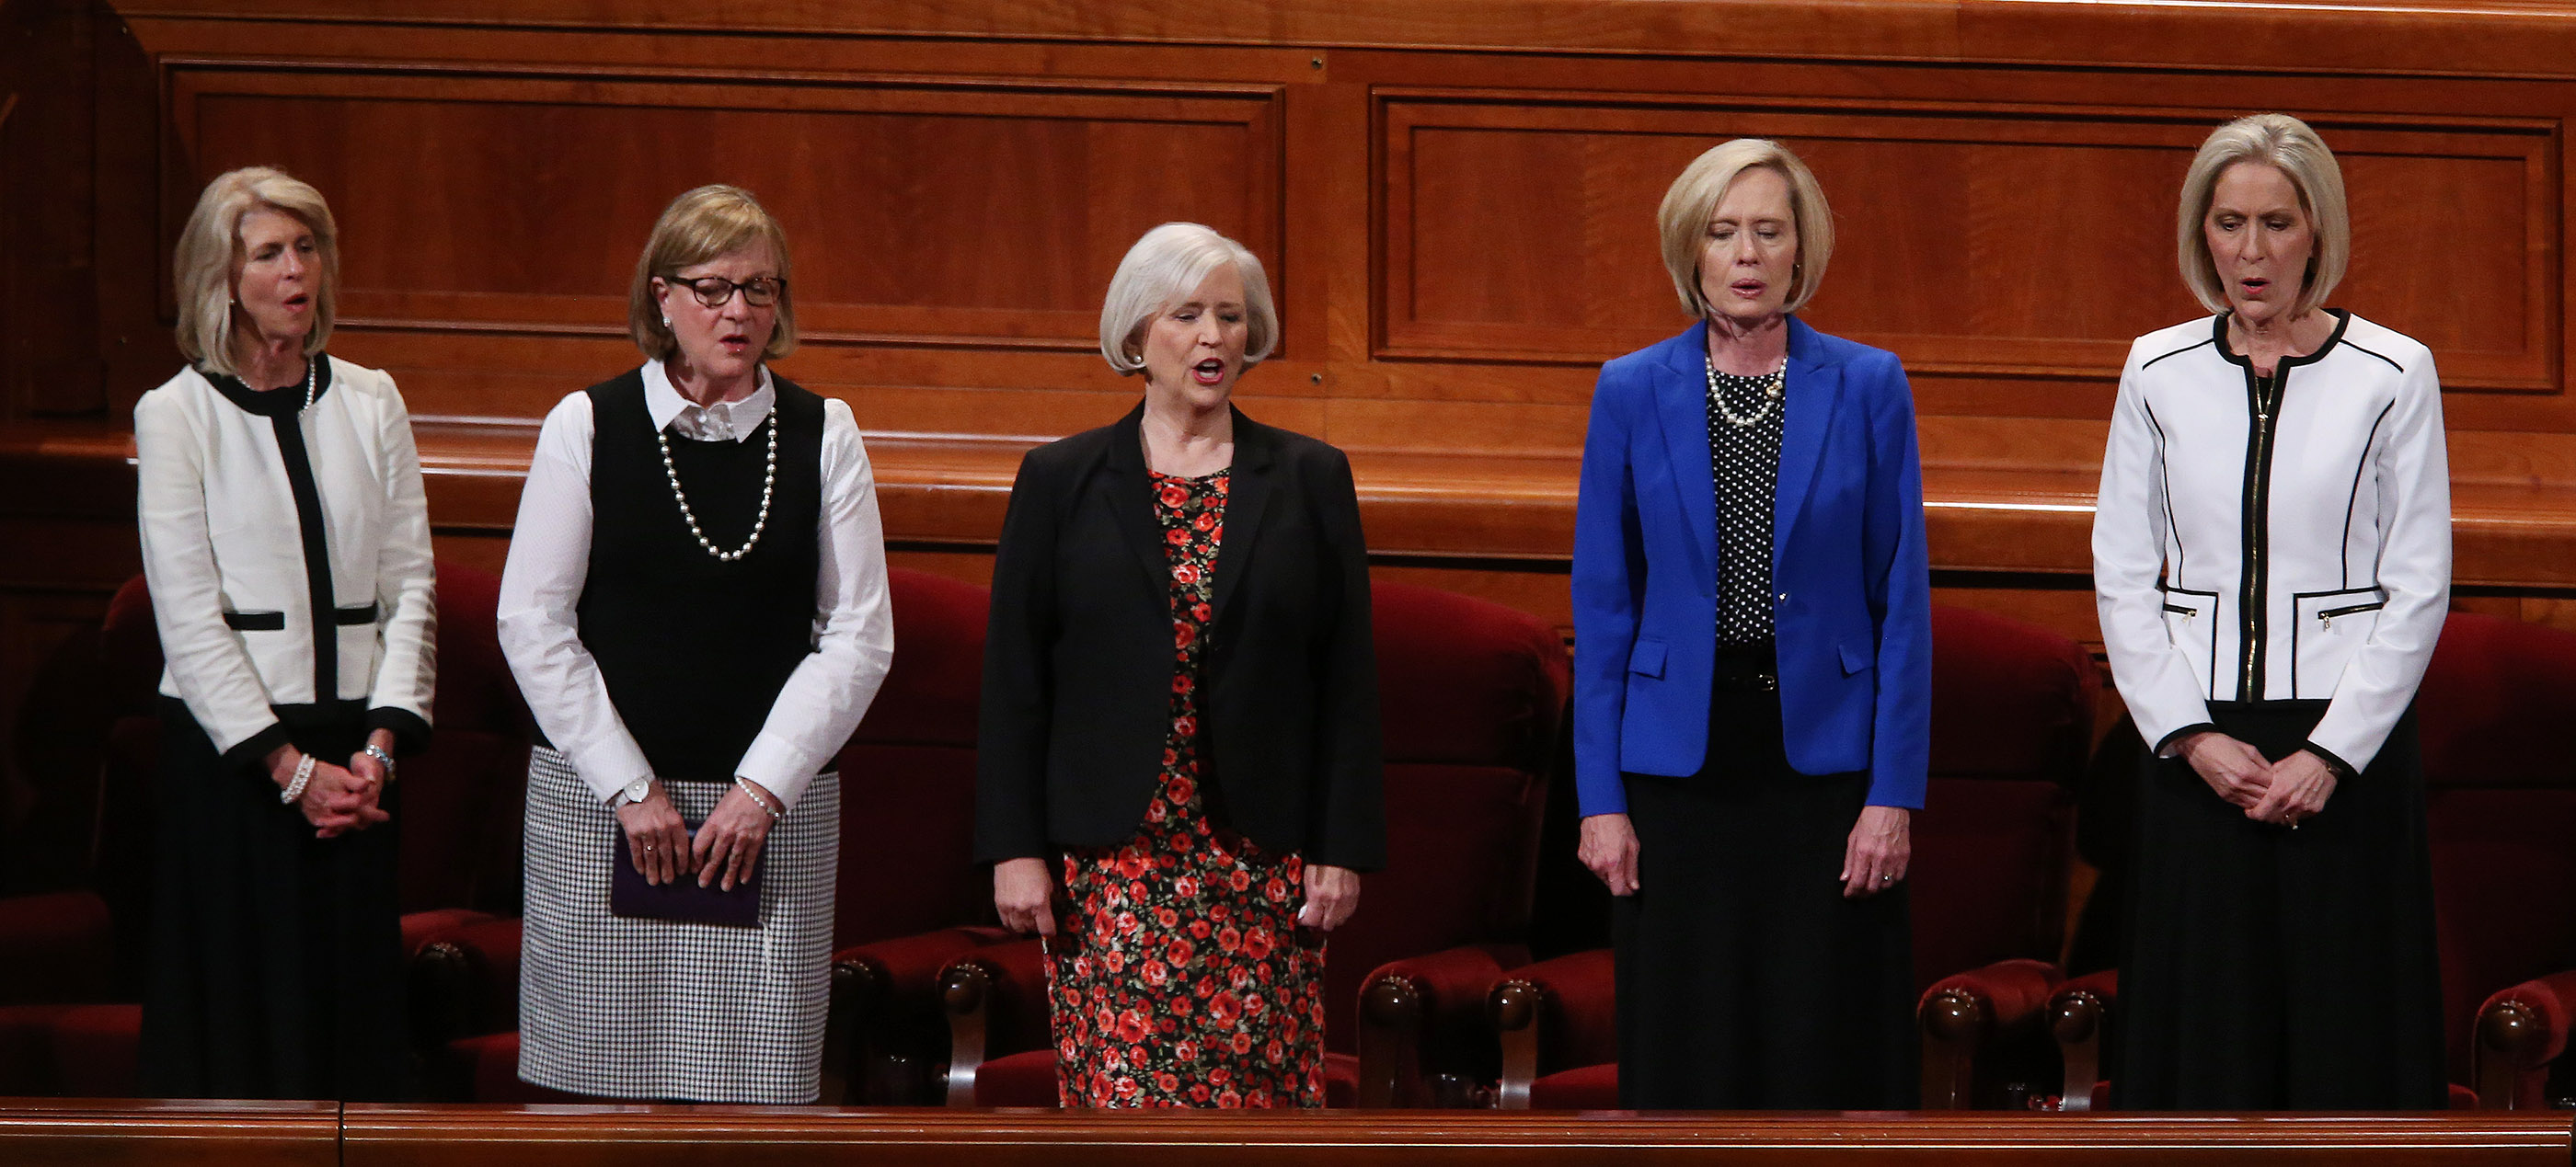 Leaders of the LDS Church's general women's auxiliaries sing during the general women's session of the 187th Semiannual General Conference at the Conference Center in Salt Lake City on Saturday, Sept. 23, 2017.